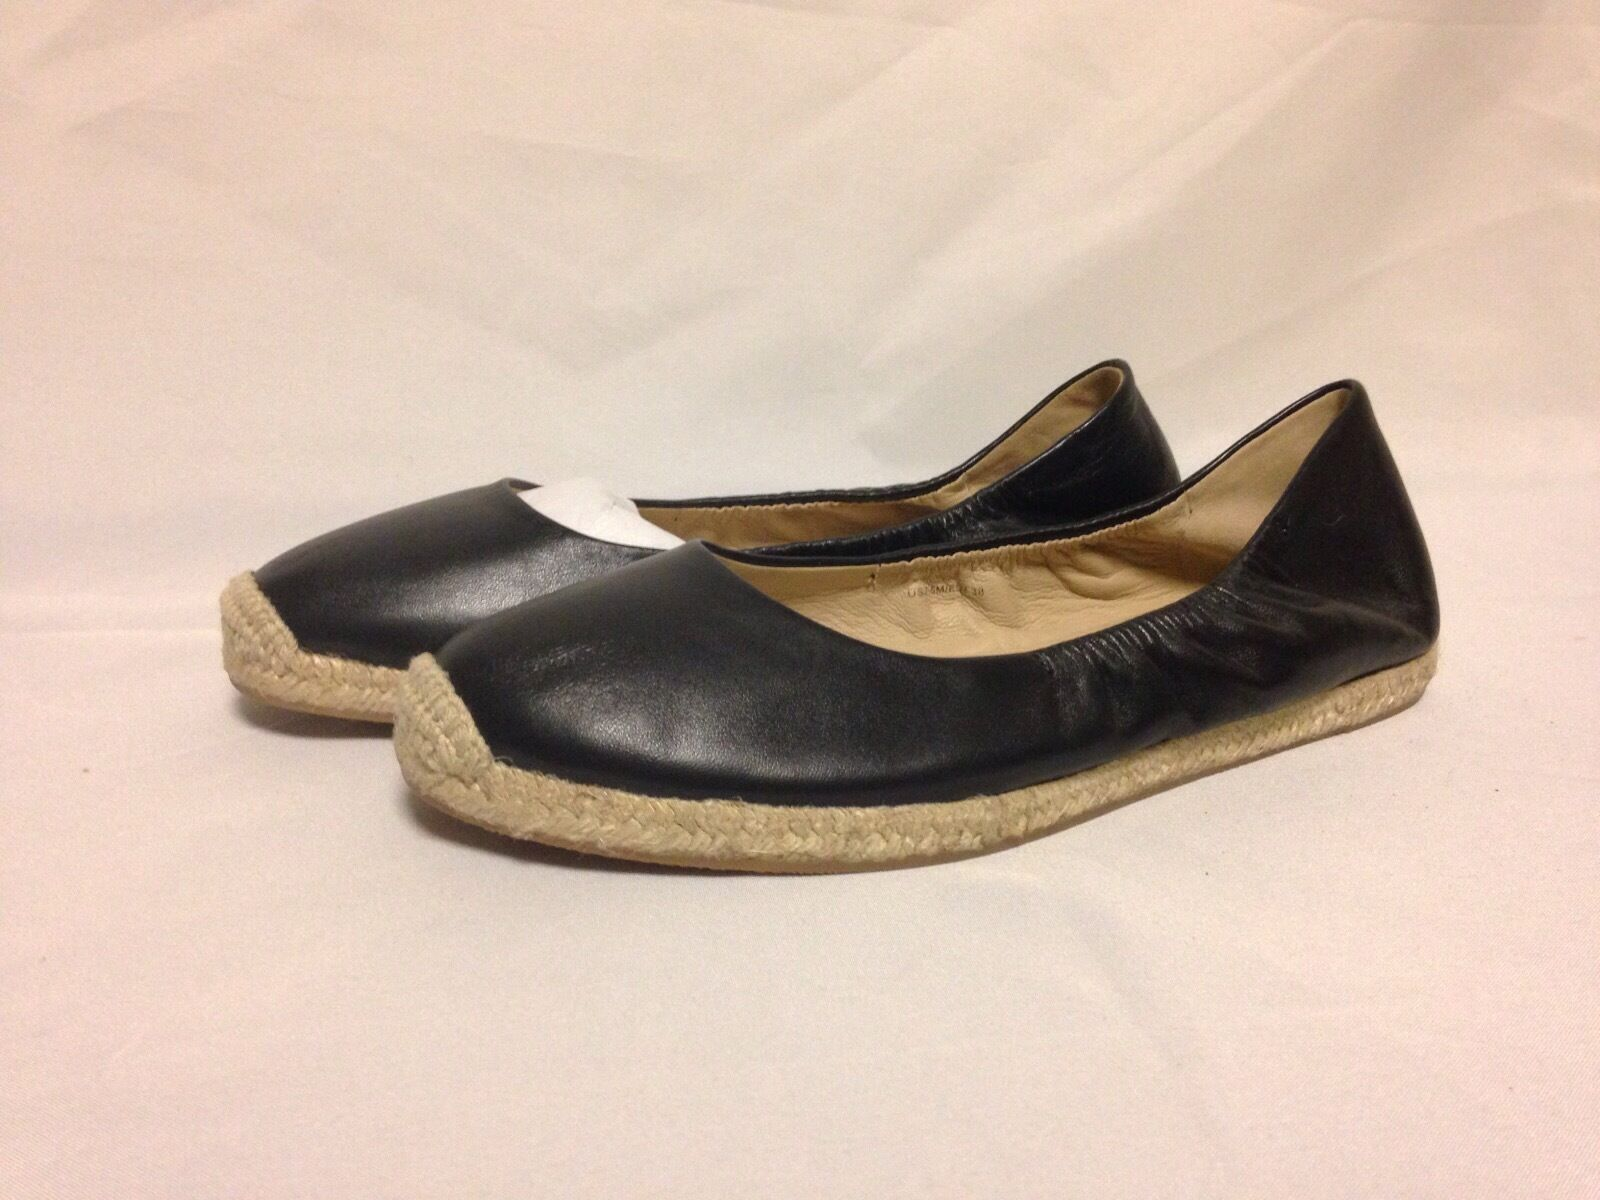 Via Spiga Arnelia Ballet Flat 7.5 M Black Leather  New w  Box